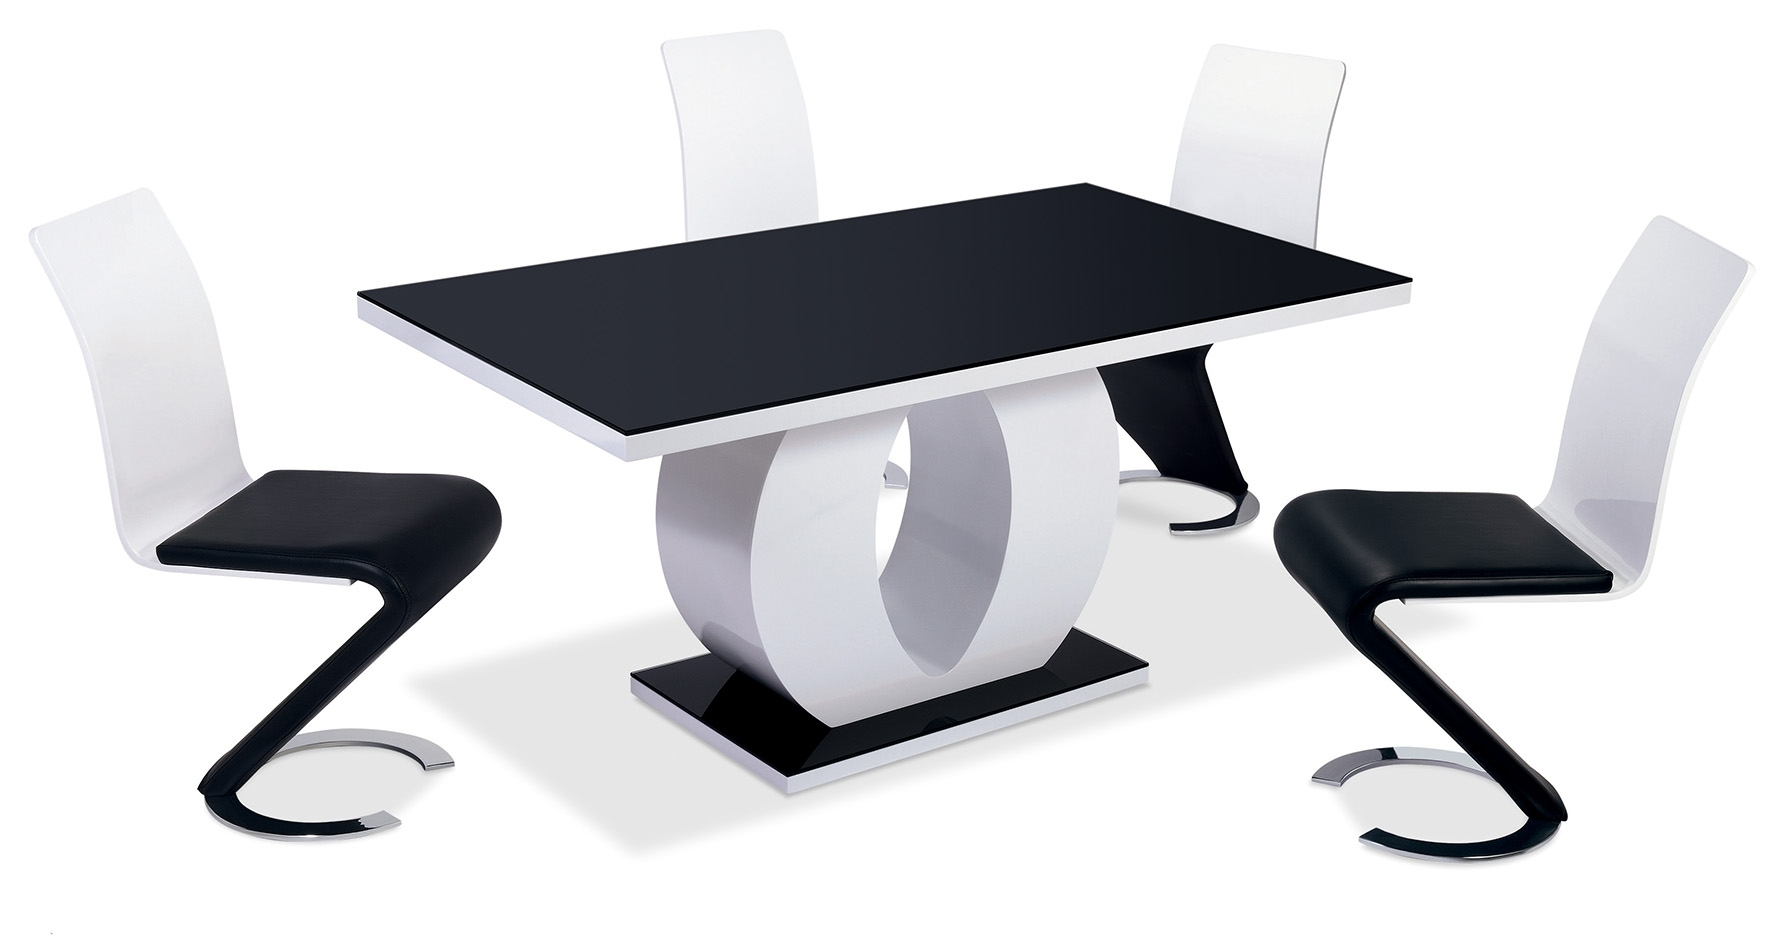 Chaise et table design le monde de l a for Ensemble table et chaise noir et blanc